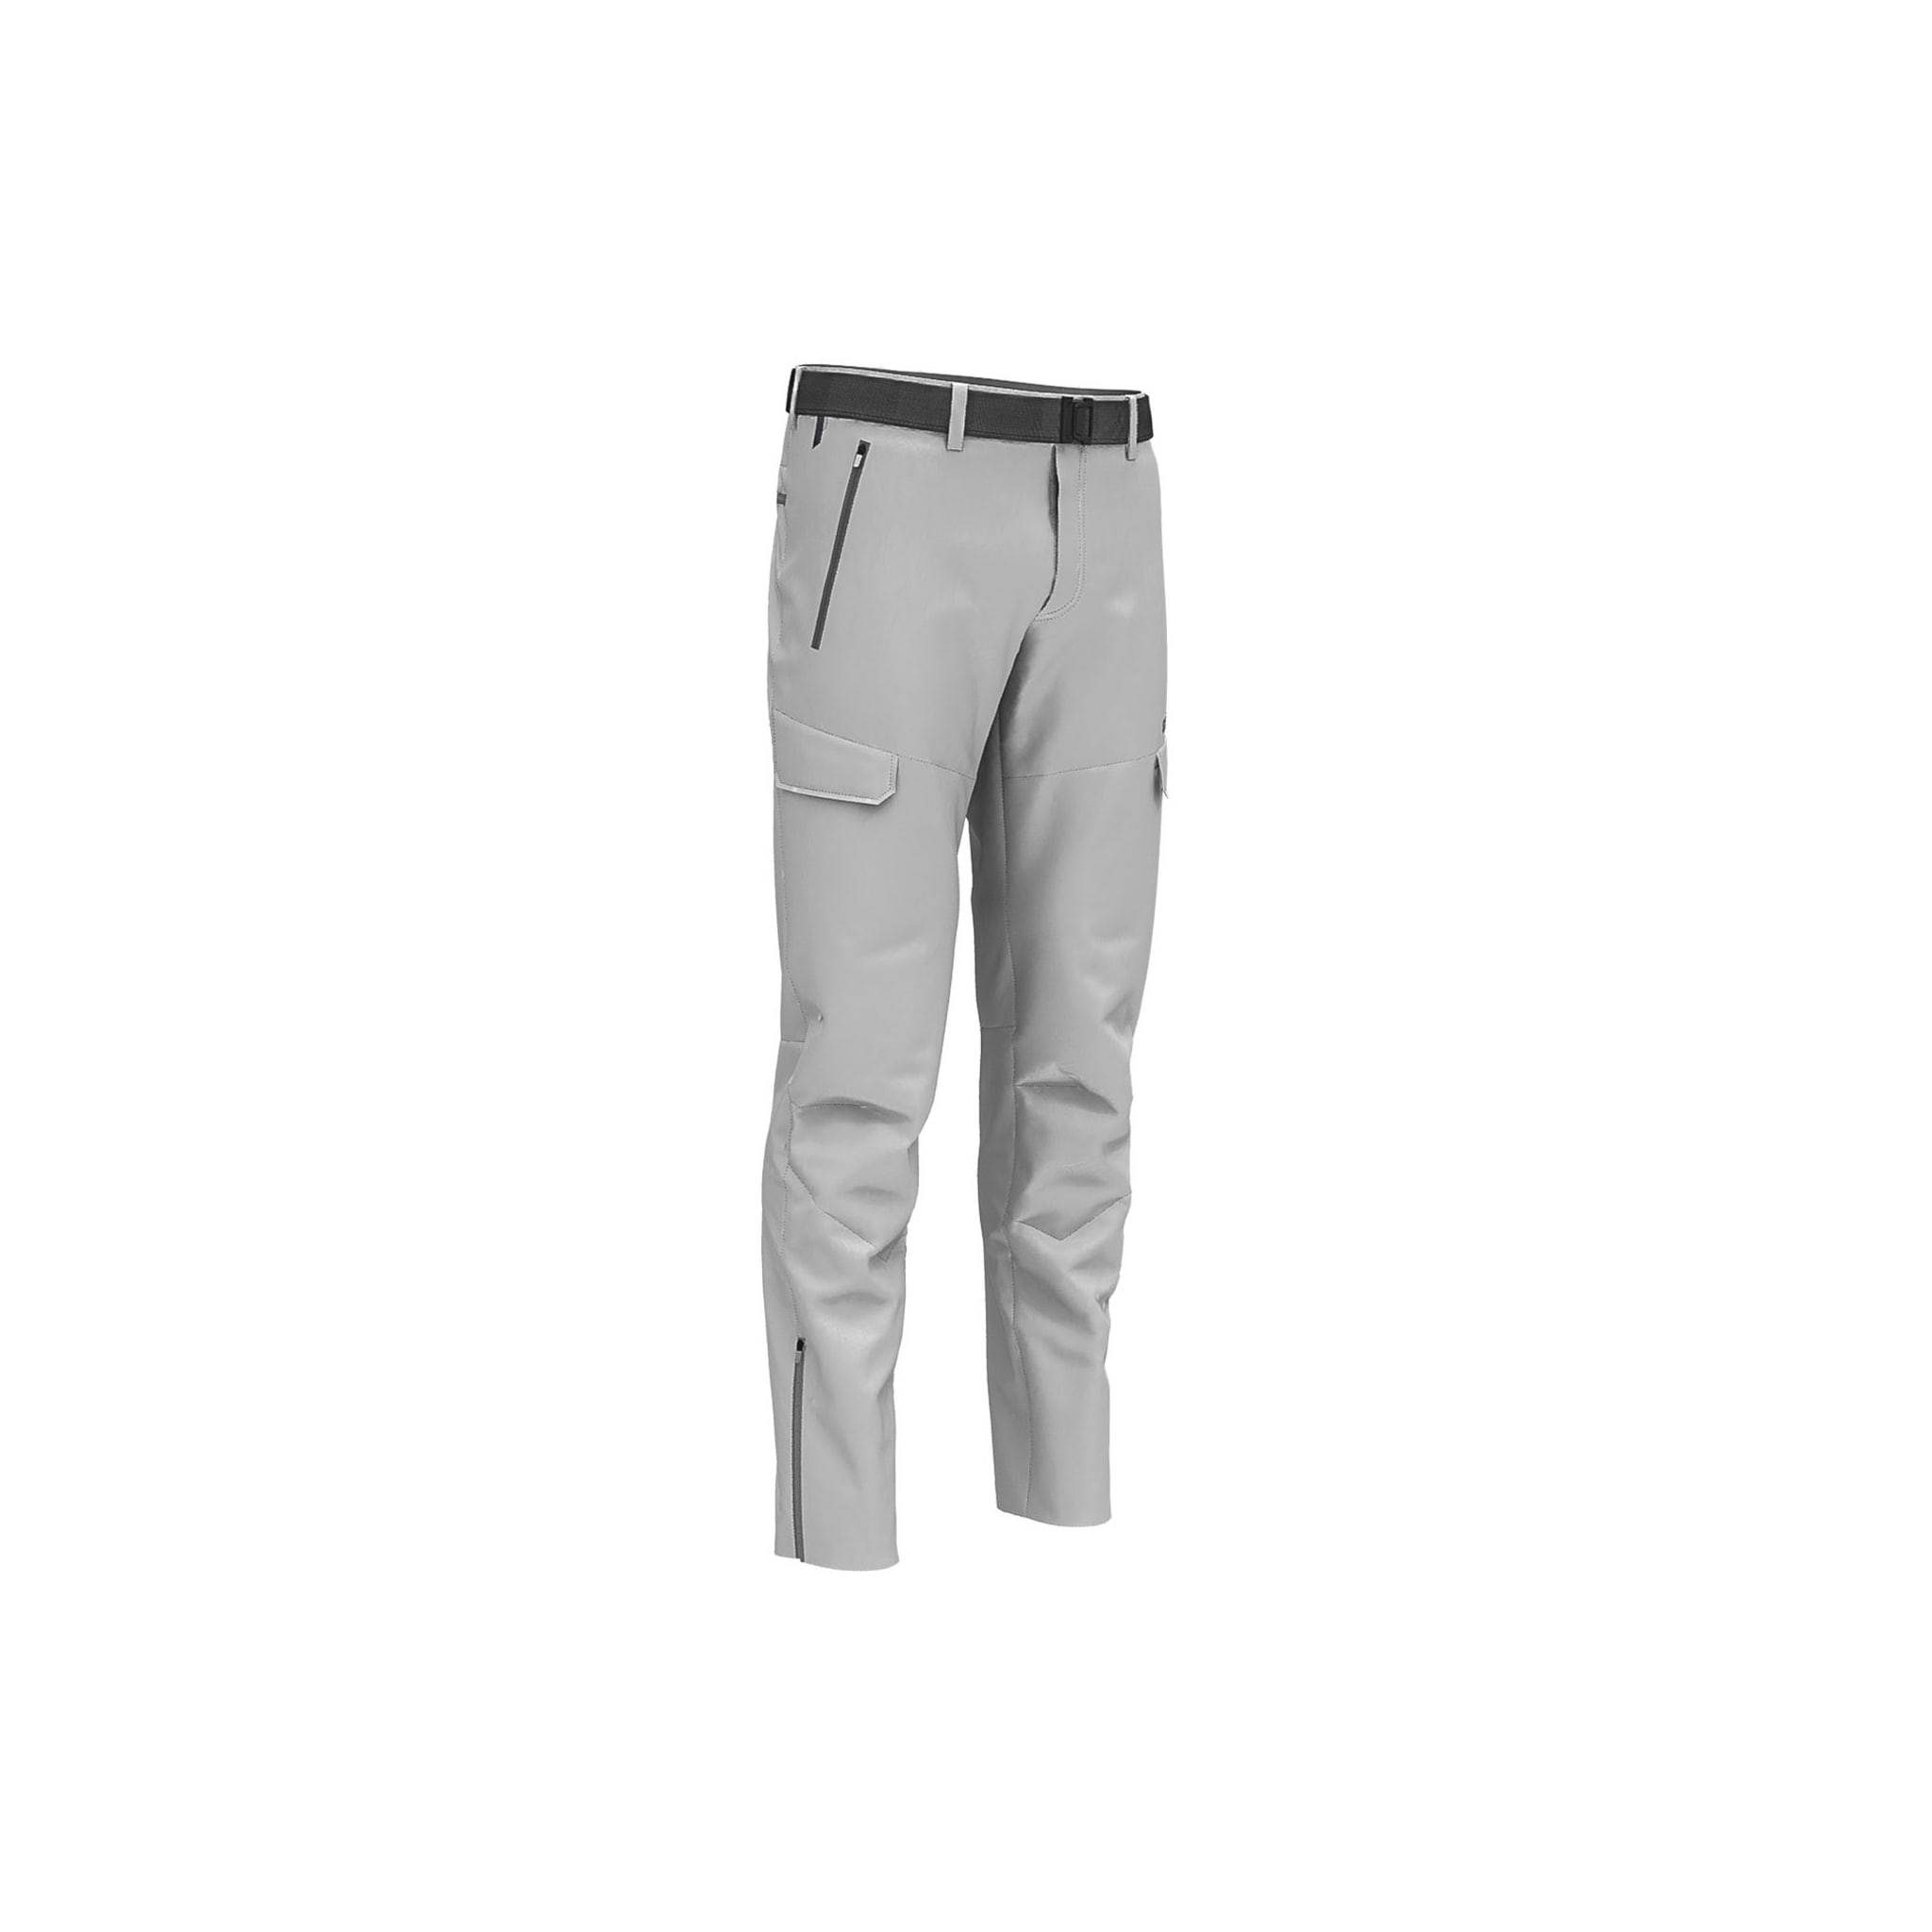 Crosby Outdoor Long Tech Pant